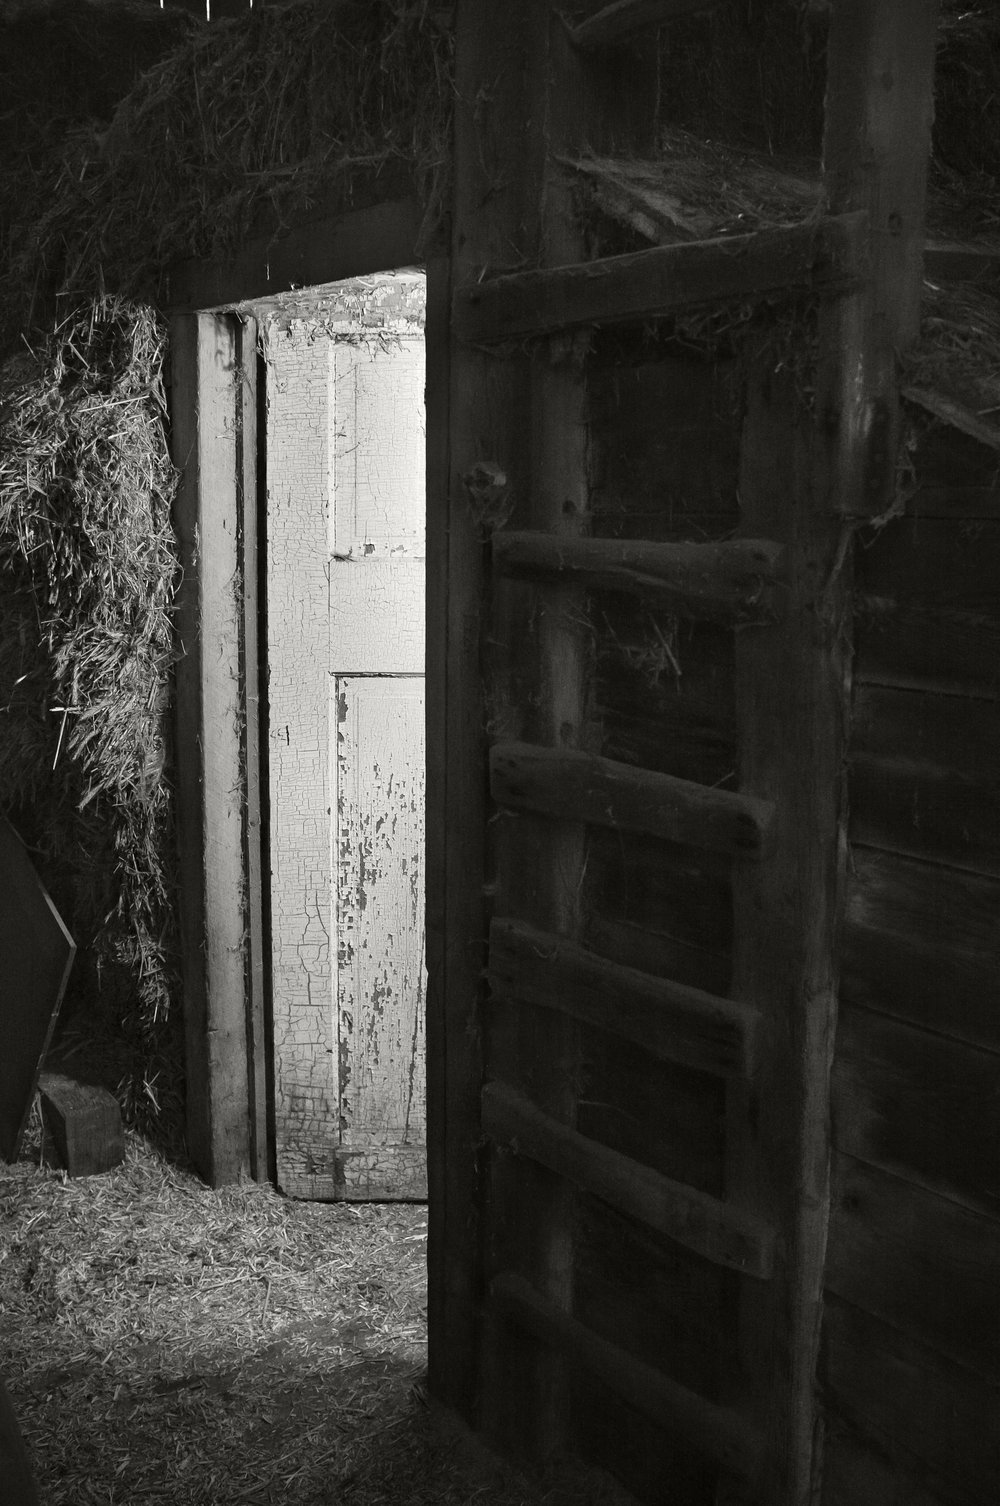 hayloft-door_8339730816_o.jpg